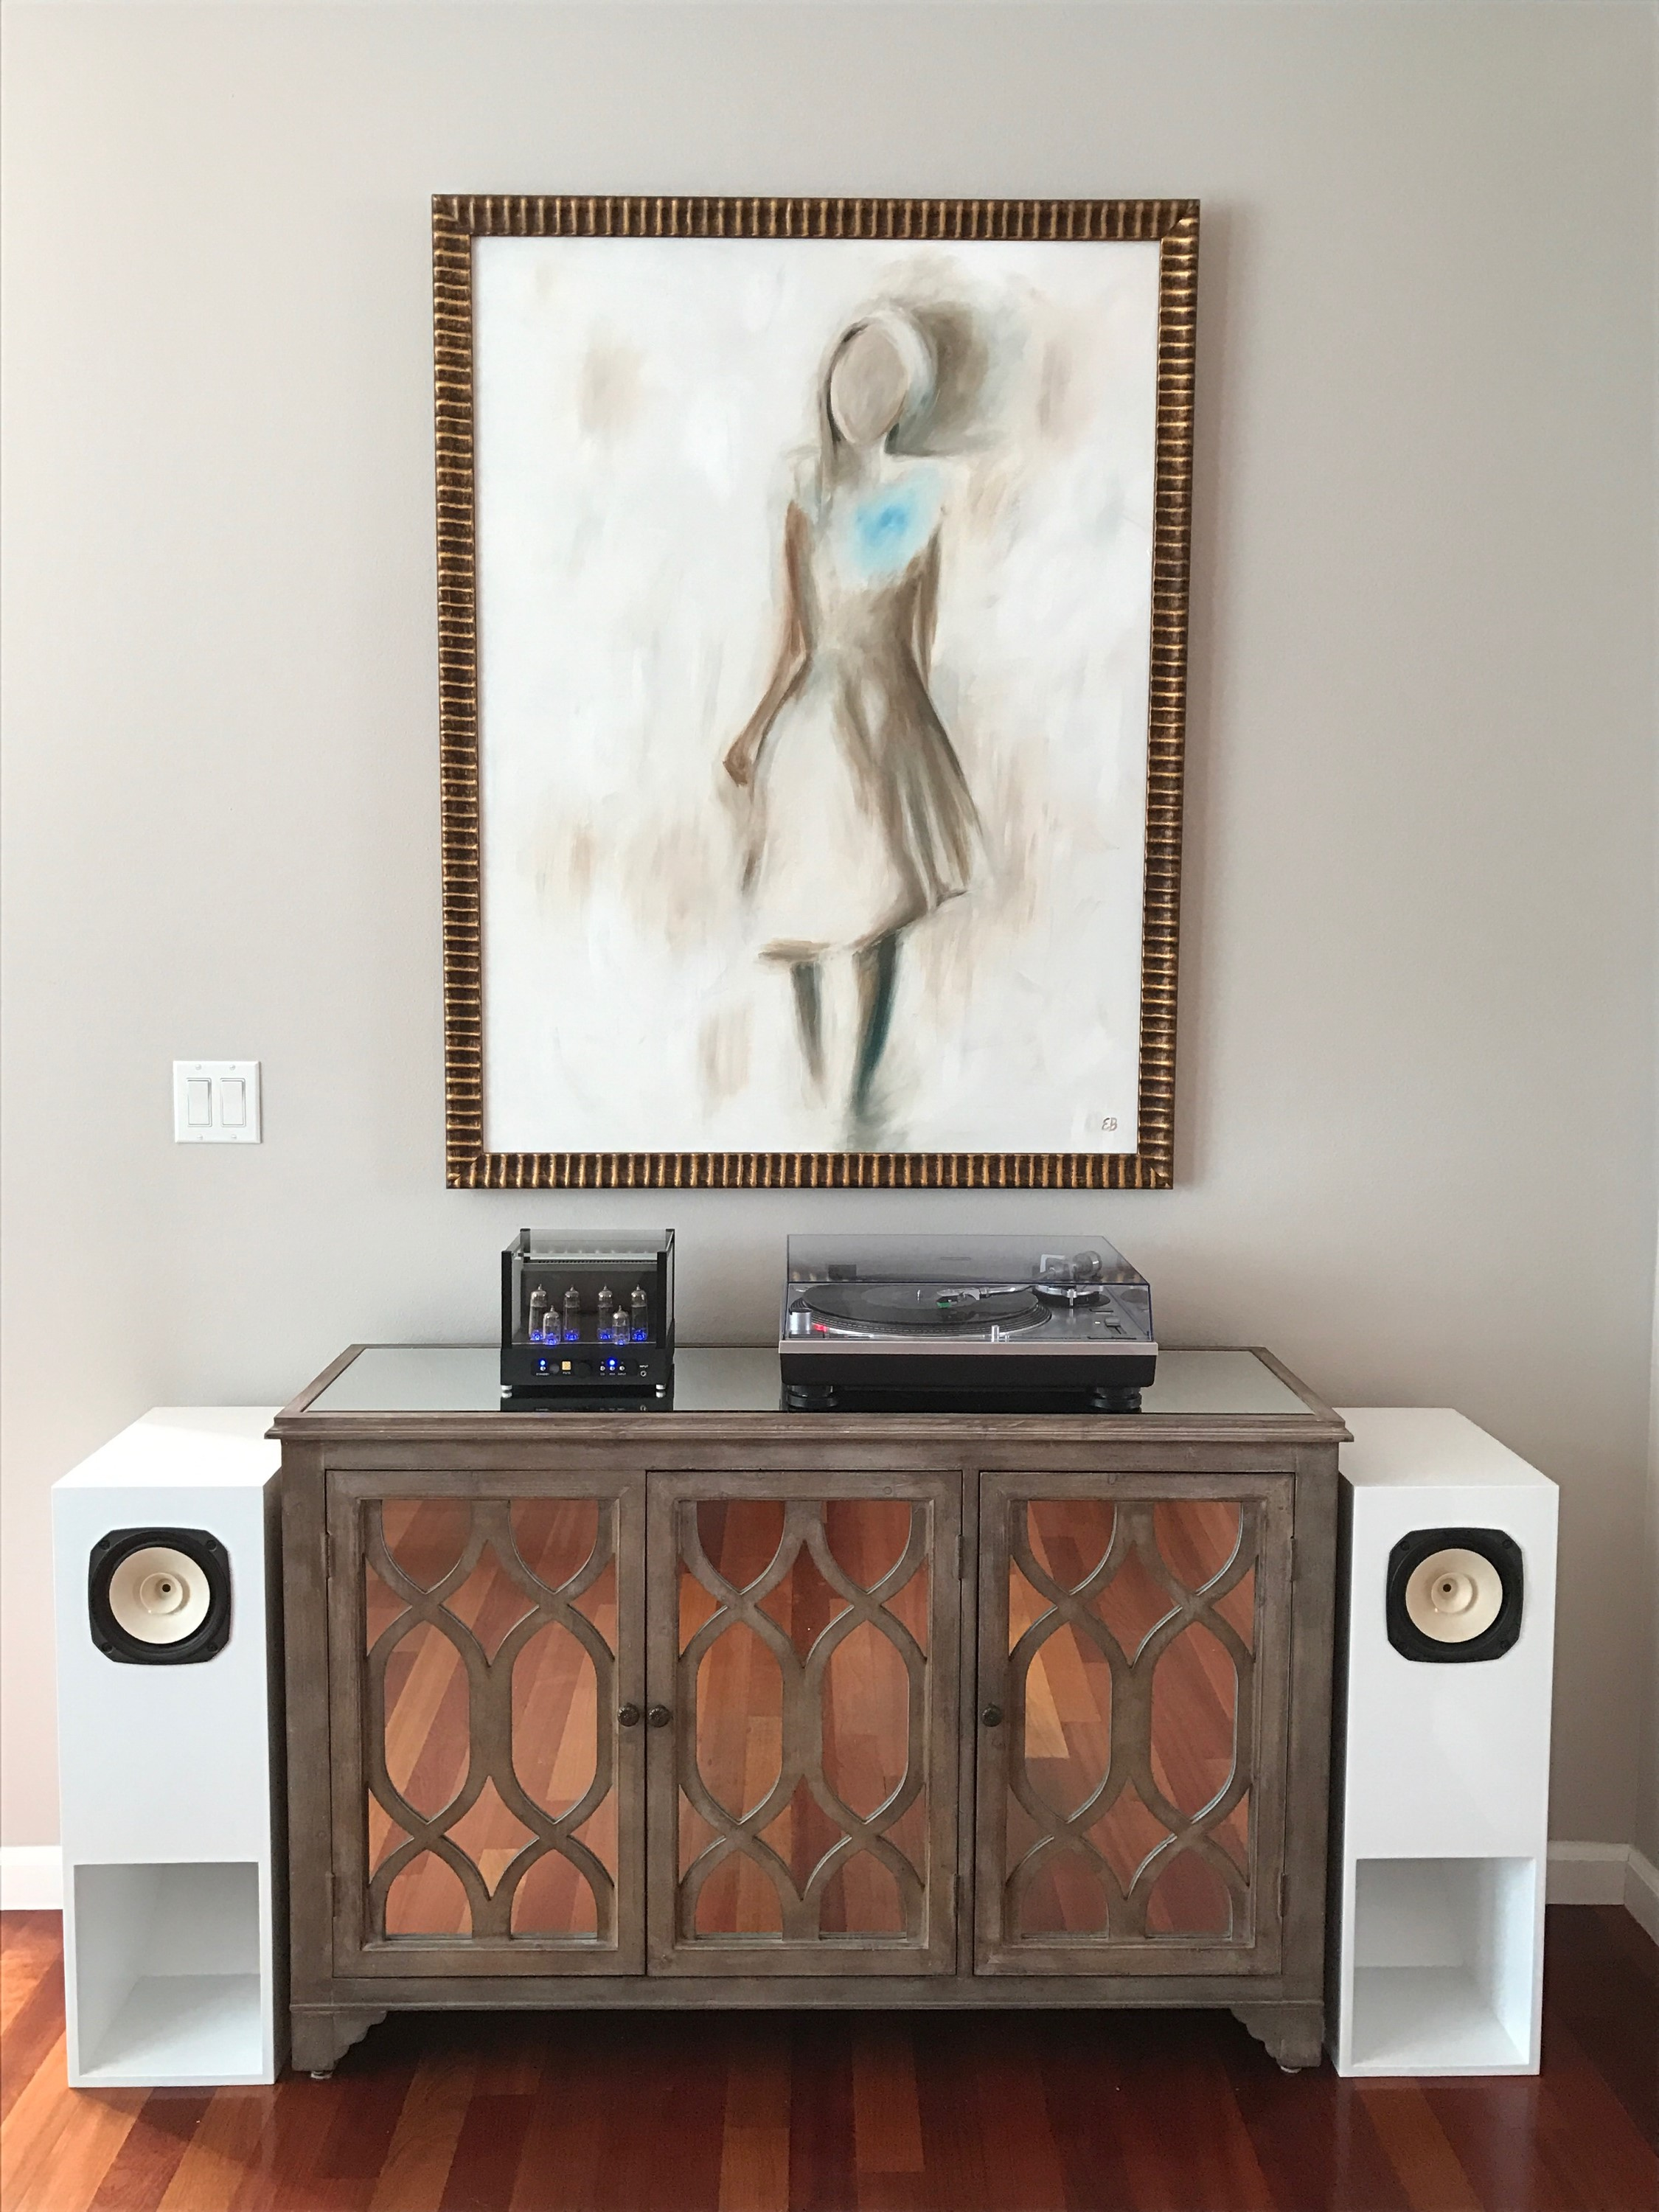 SWEET!: Jolida FX10, AudioTechnica LP120, Custom GHA Fostex speakers.